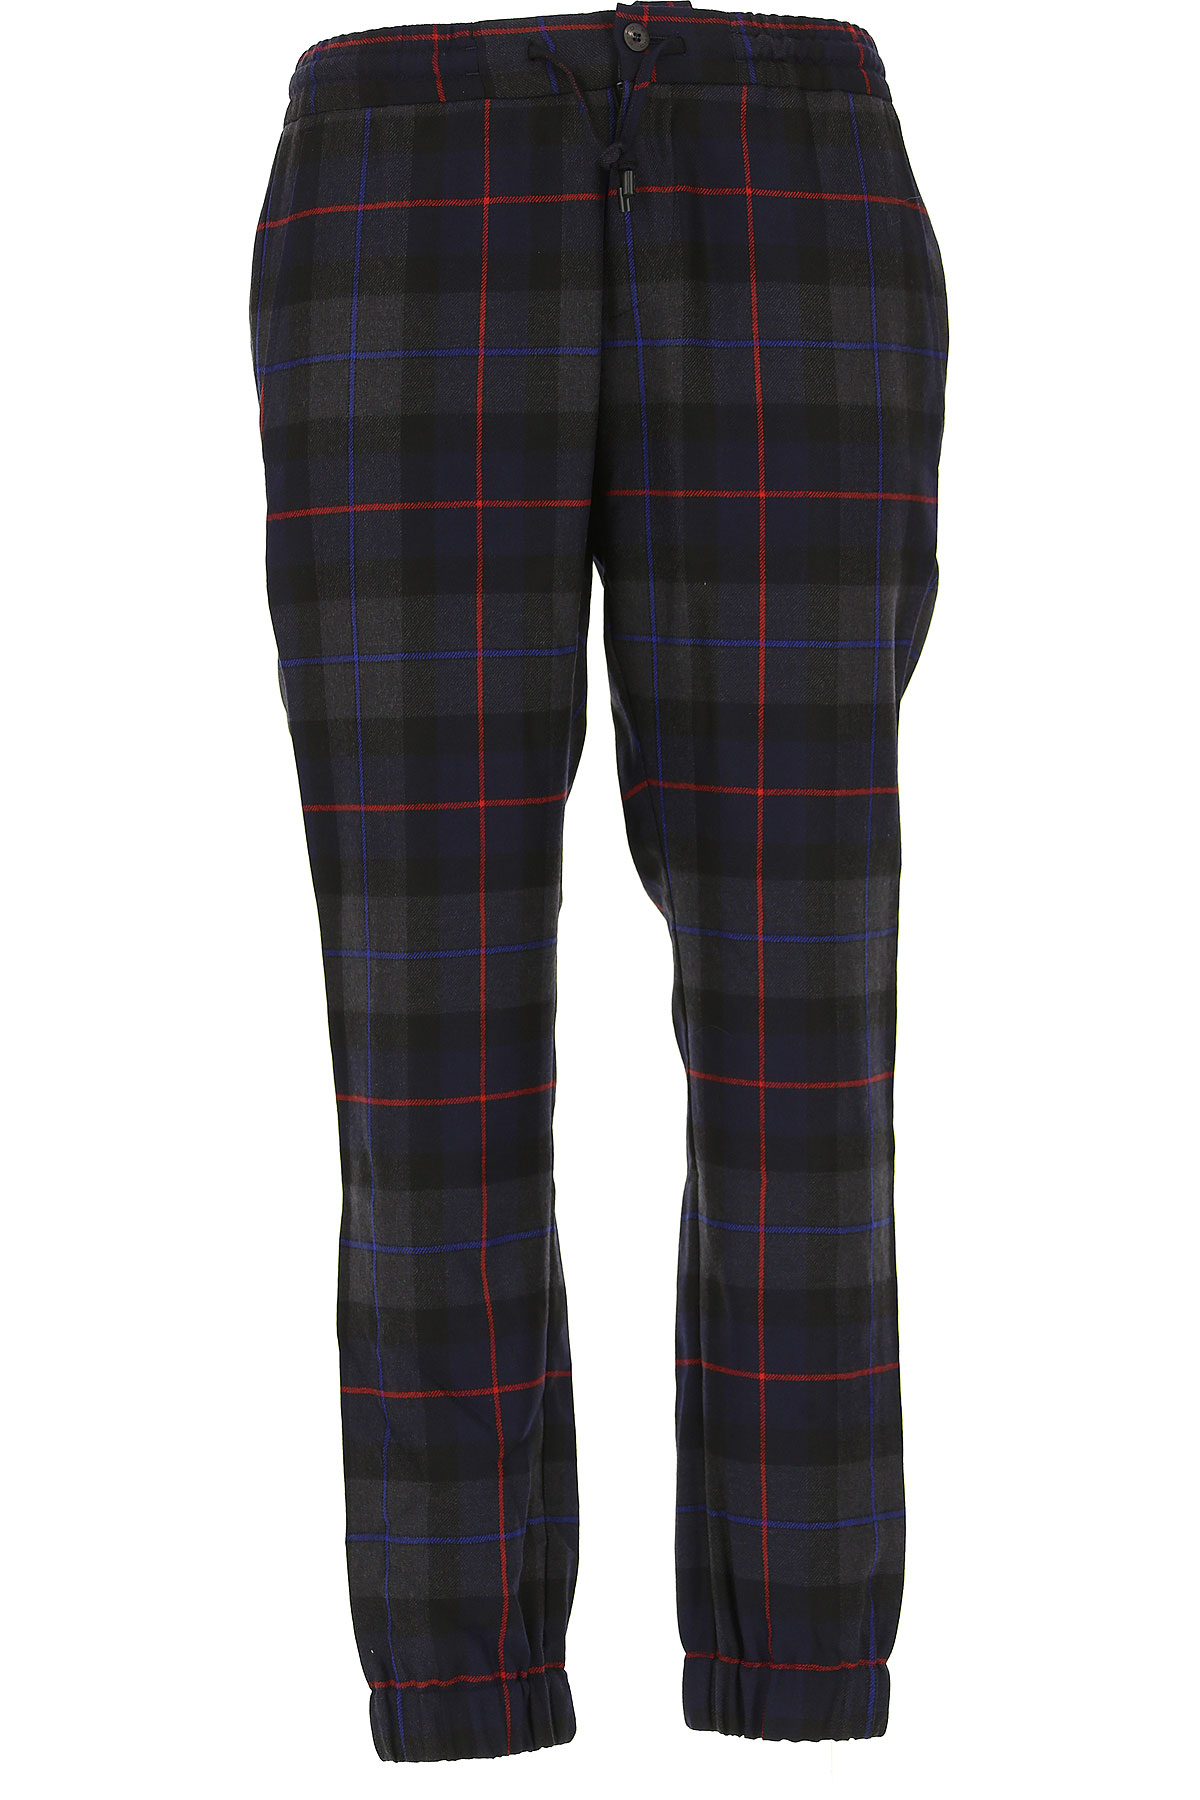 Etro Pants for Men On Sale, Multicolor, Cotton, 2017, 34 36 40